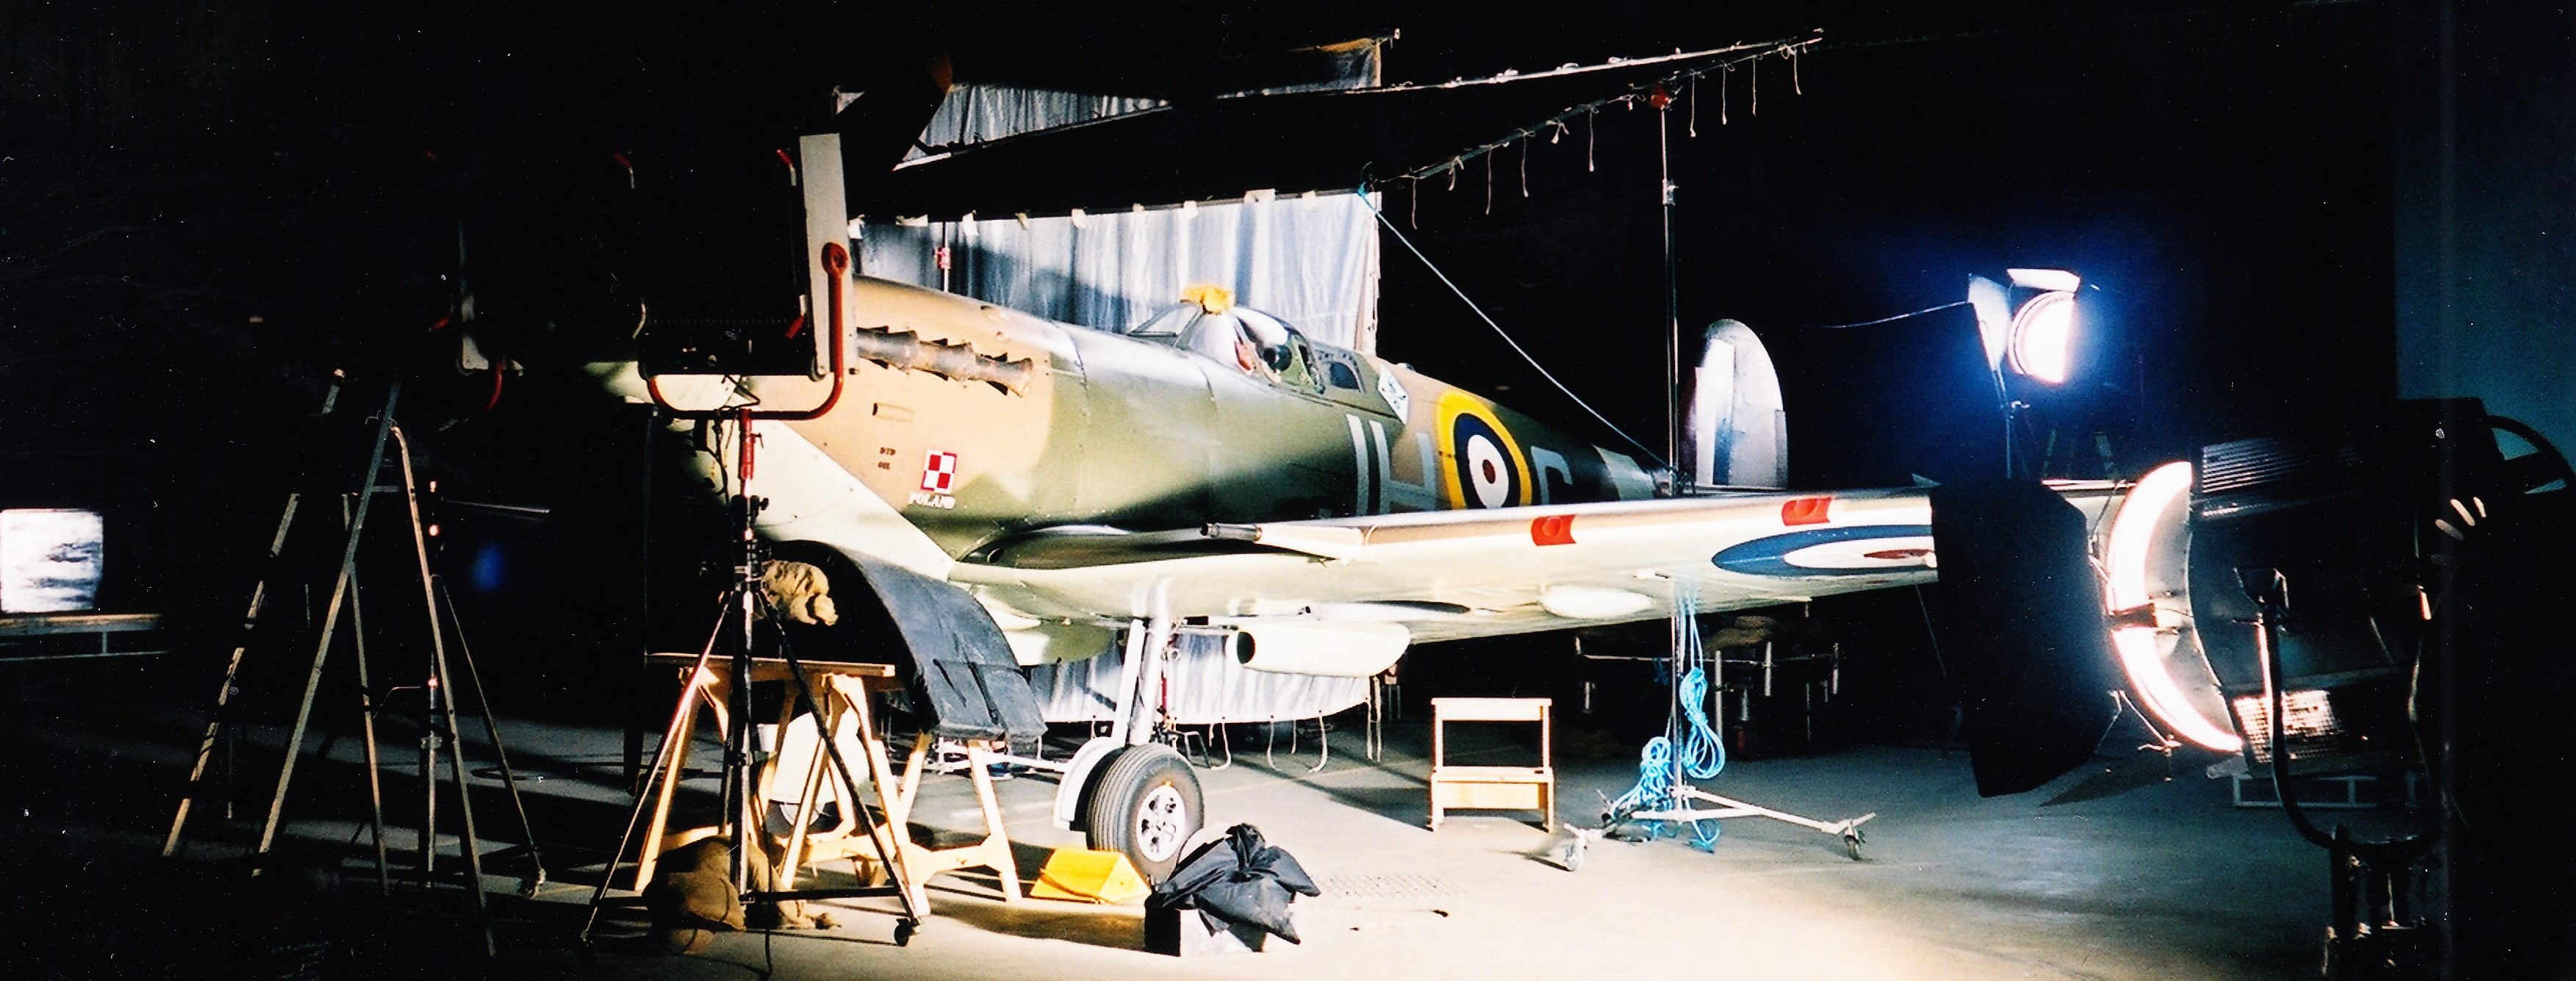 Historic aircraft in Film and TV work